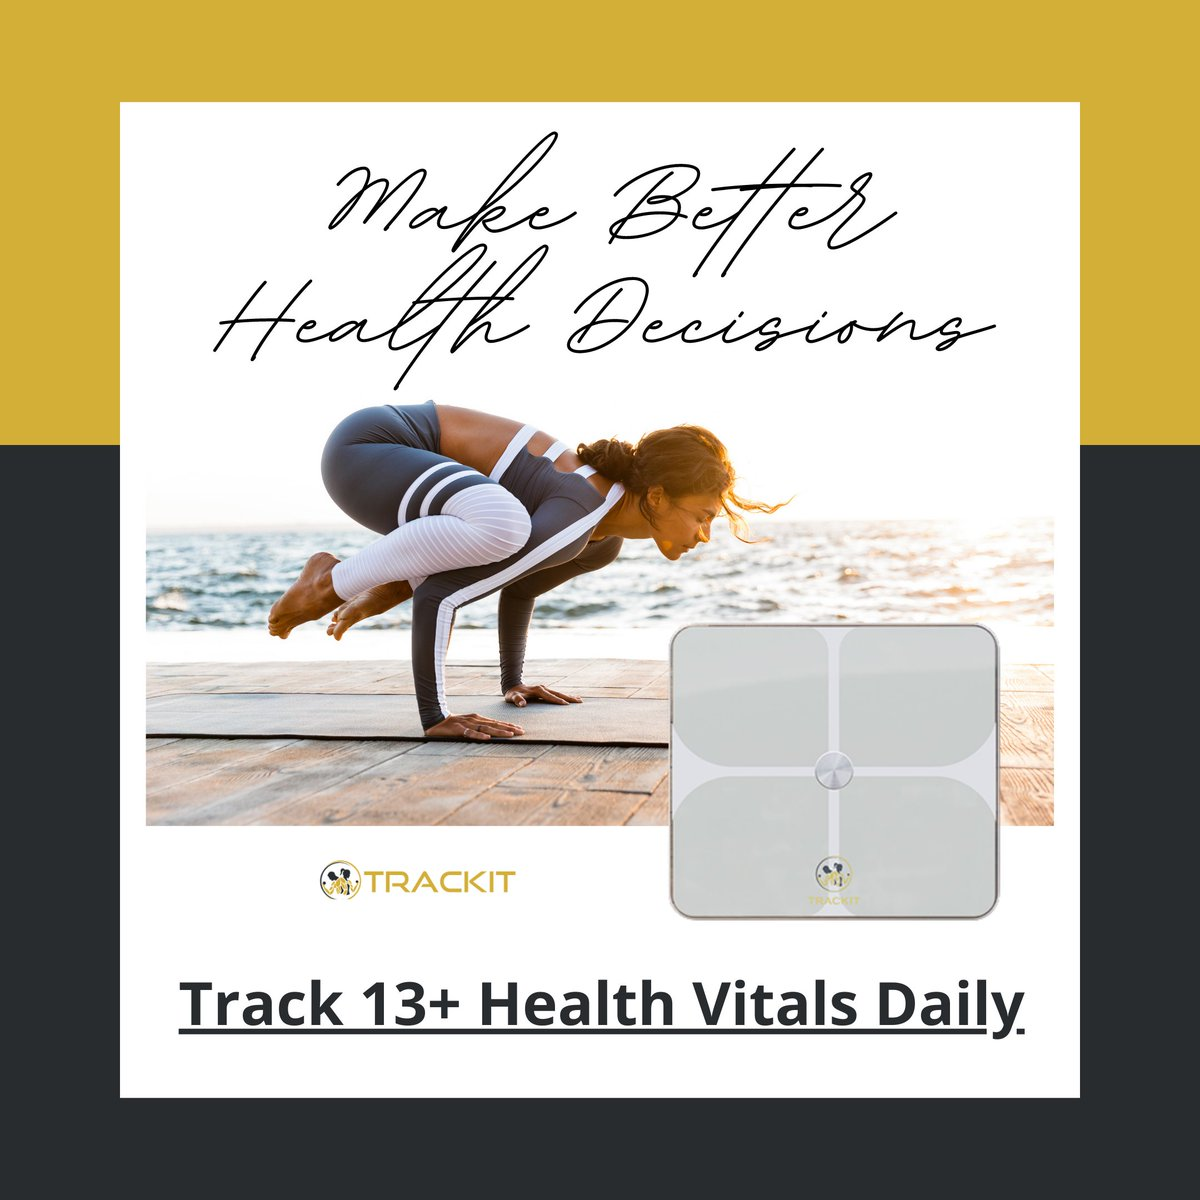 Make Better Health Decisions With The Trackit Smart Scale.    Track 13+ Health Vitals Daily.  🌐 -    #Trackit #exercise #fitness #workout #gym #motivation #health #fit #training #fitnessmotivation #warmupexercise #healthylifestyle #healthy #lifestyle